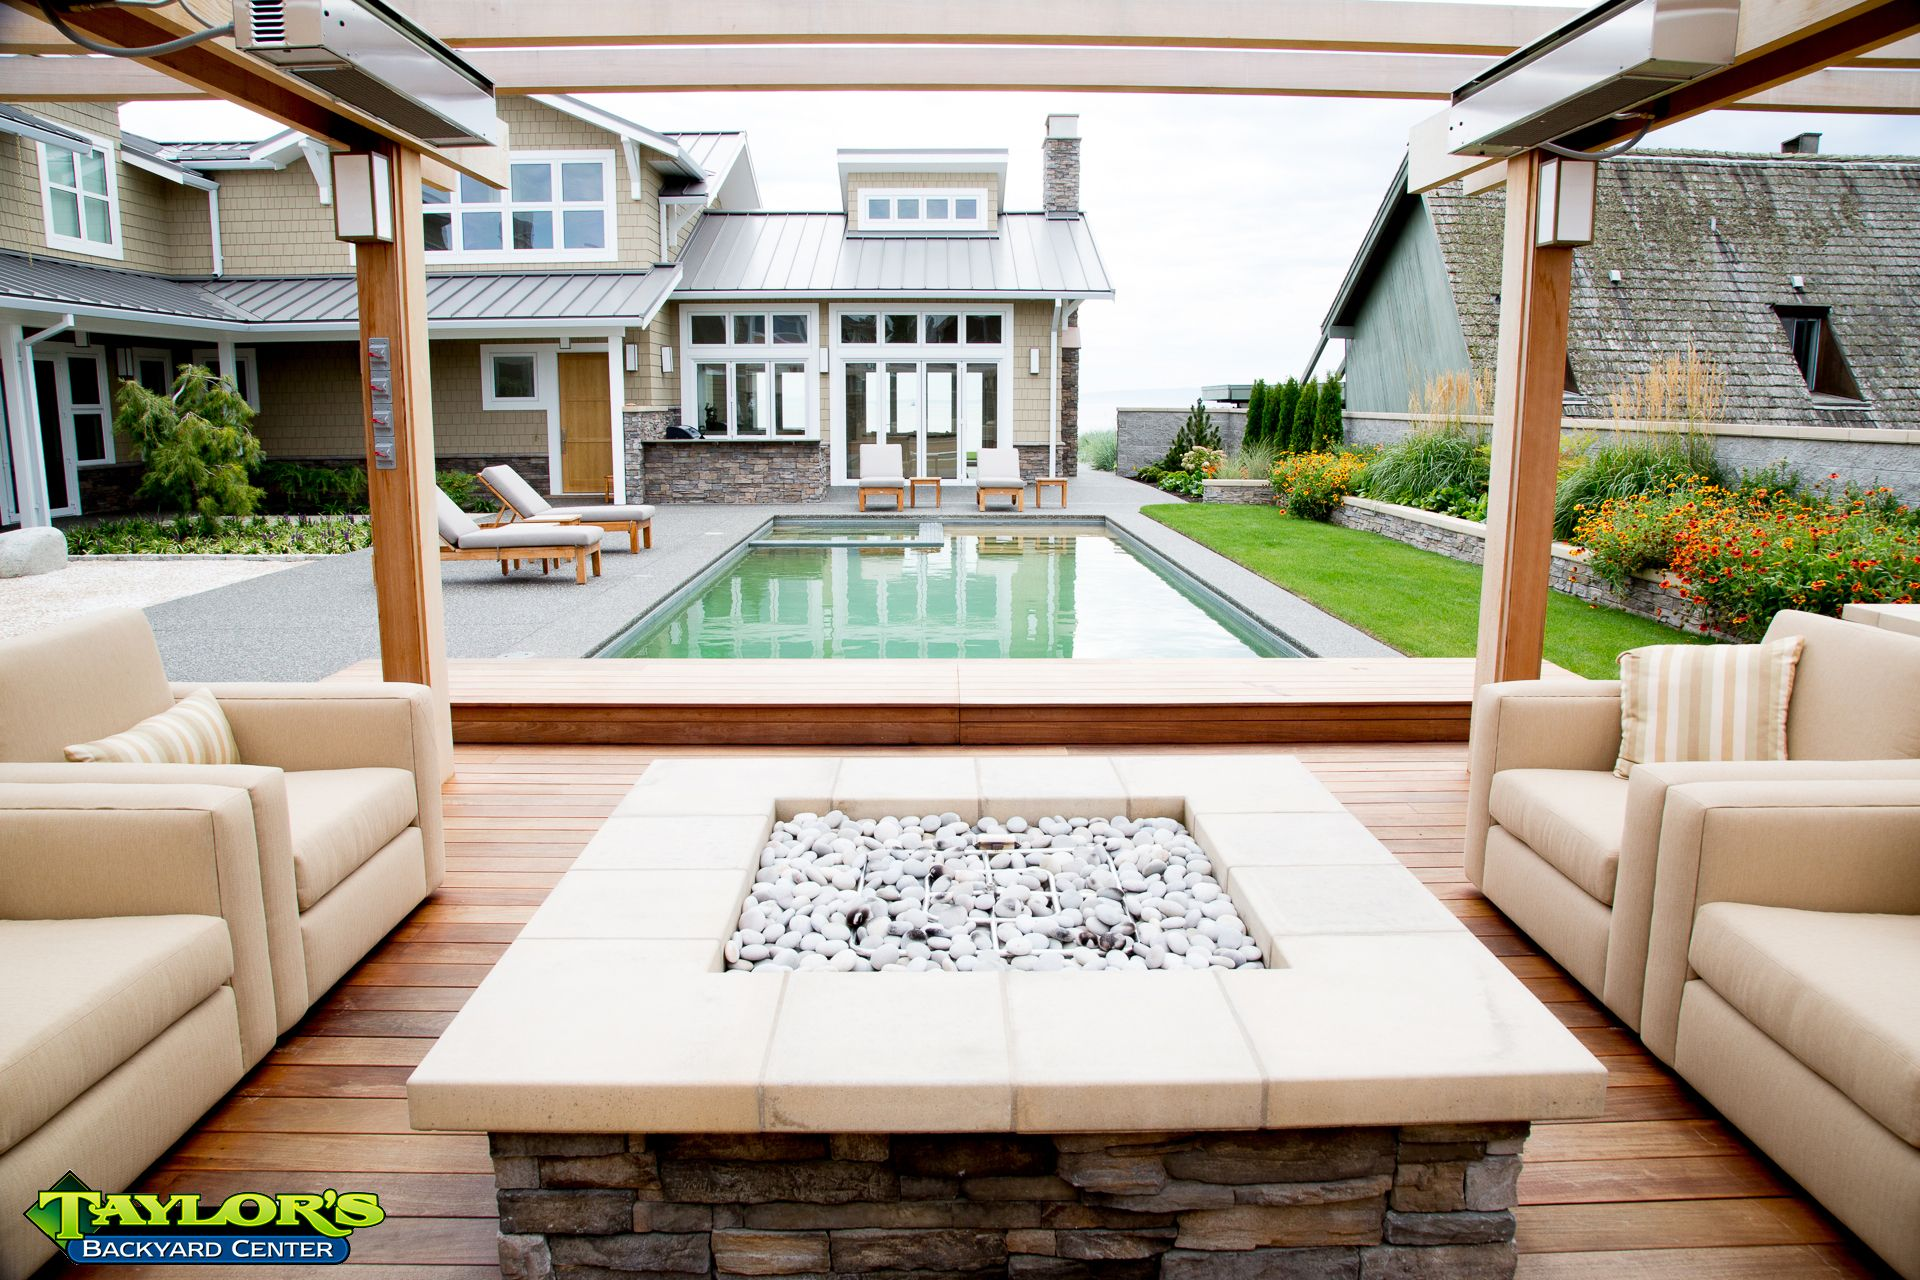 by far one of our favorite projects very modern concrete pool and